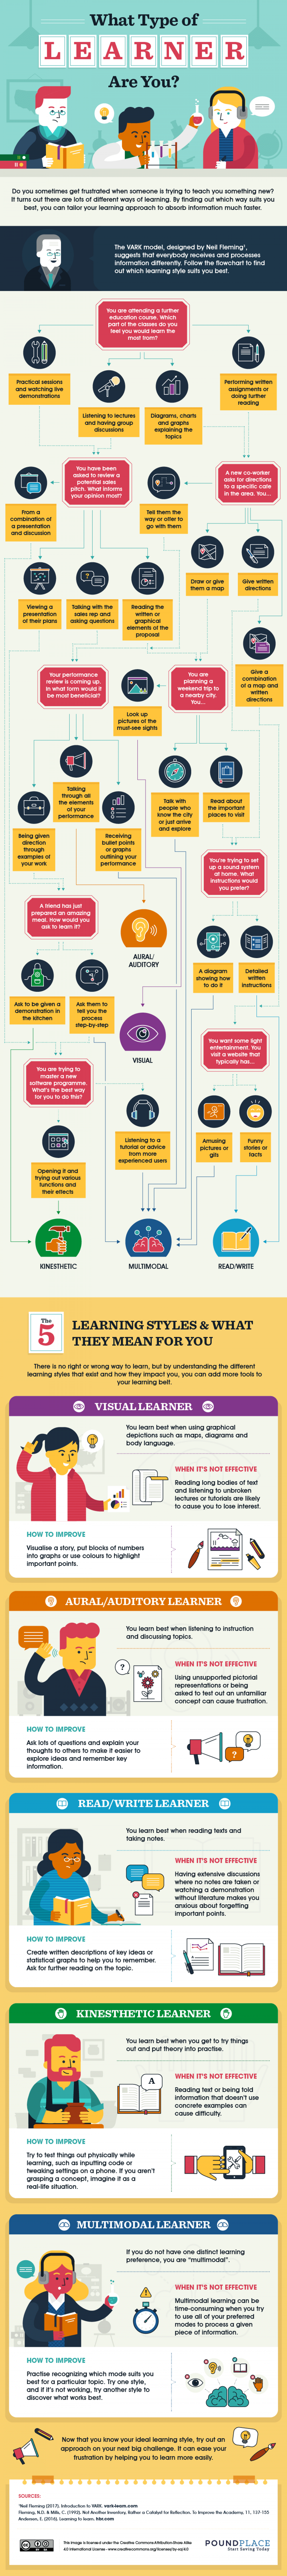 Do You Know What Kind Of Learner You Are? Infographic